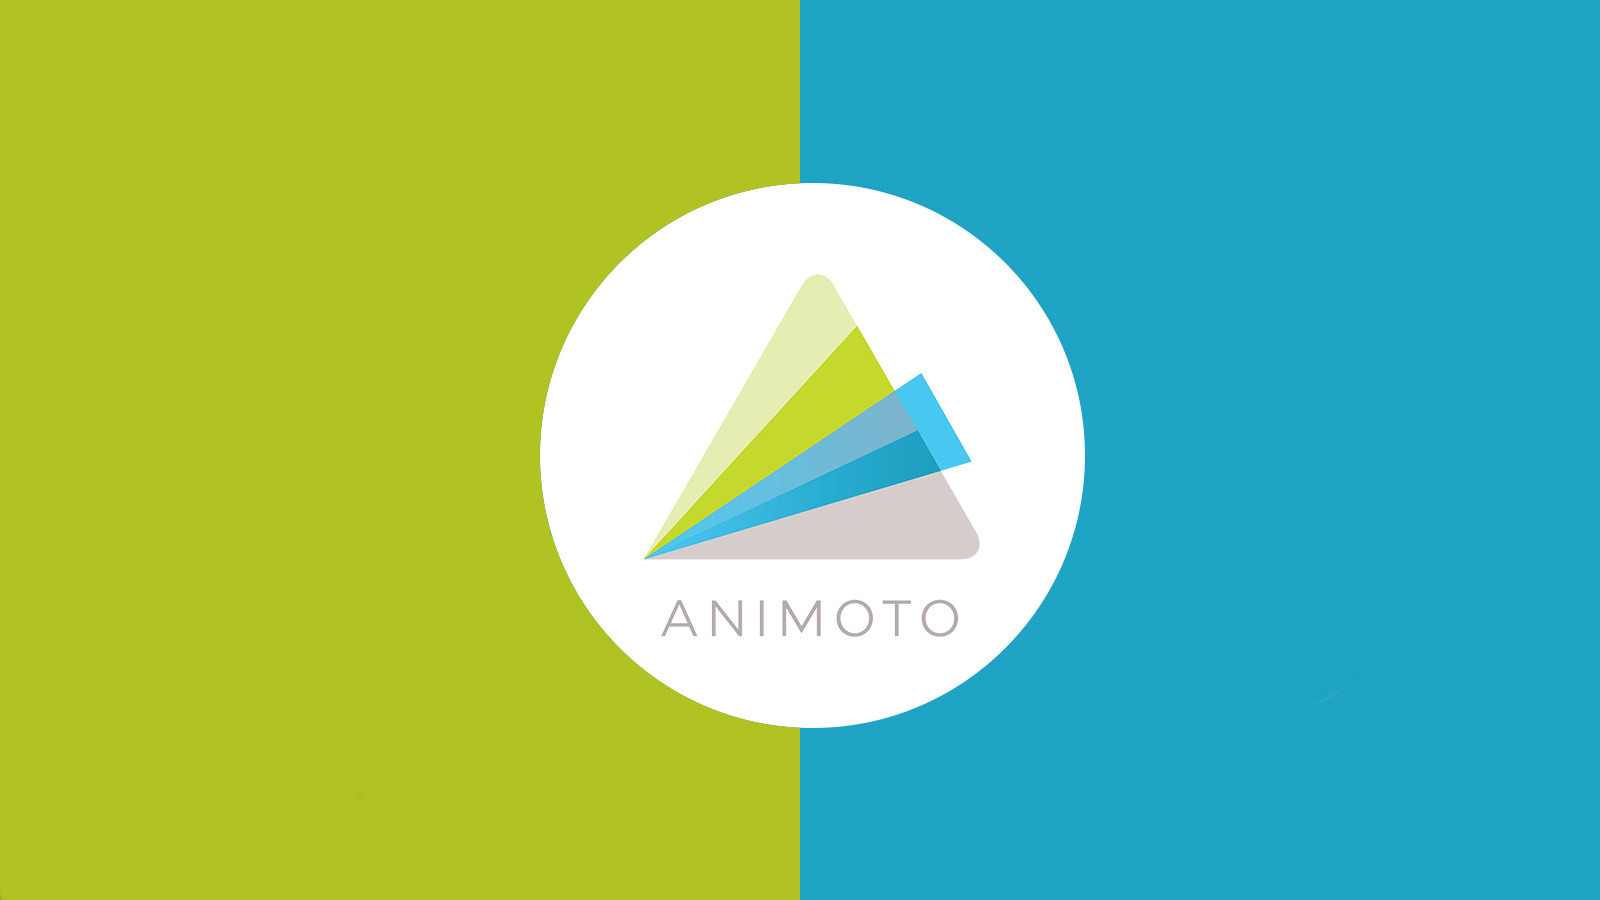 Animoto Create Amazing Videos With Photos